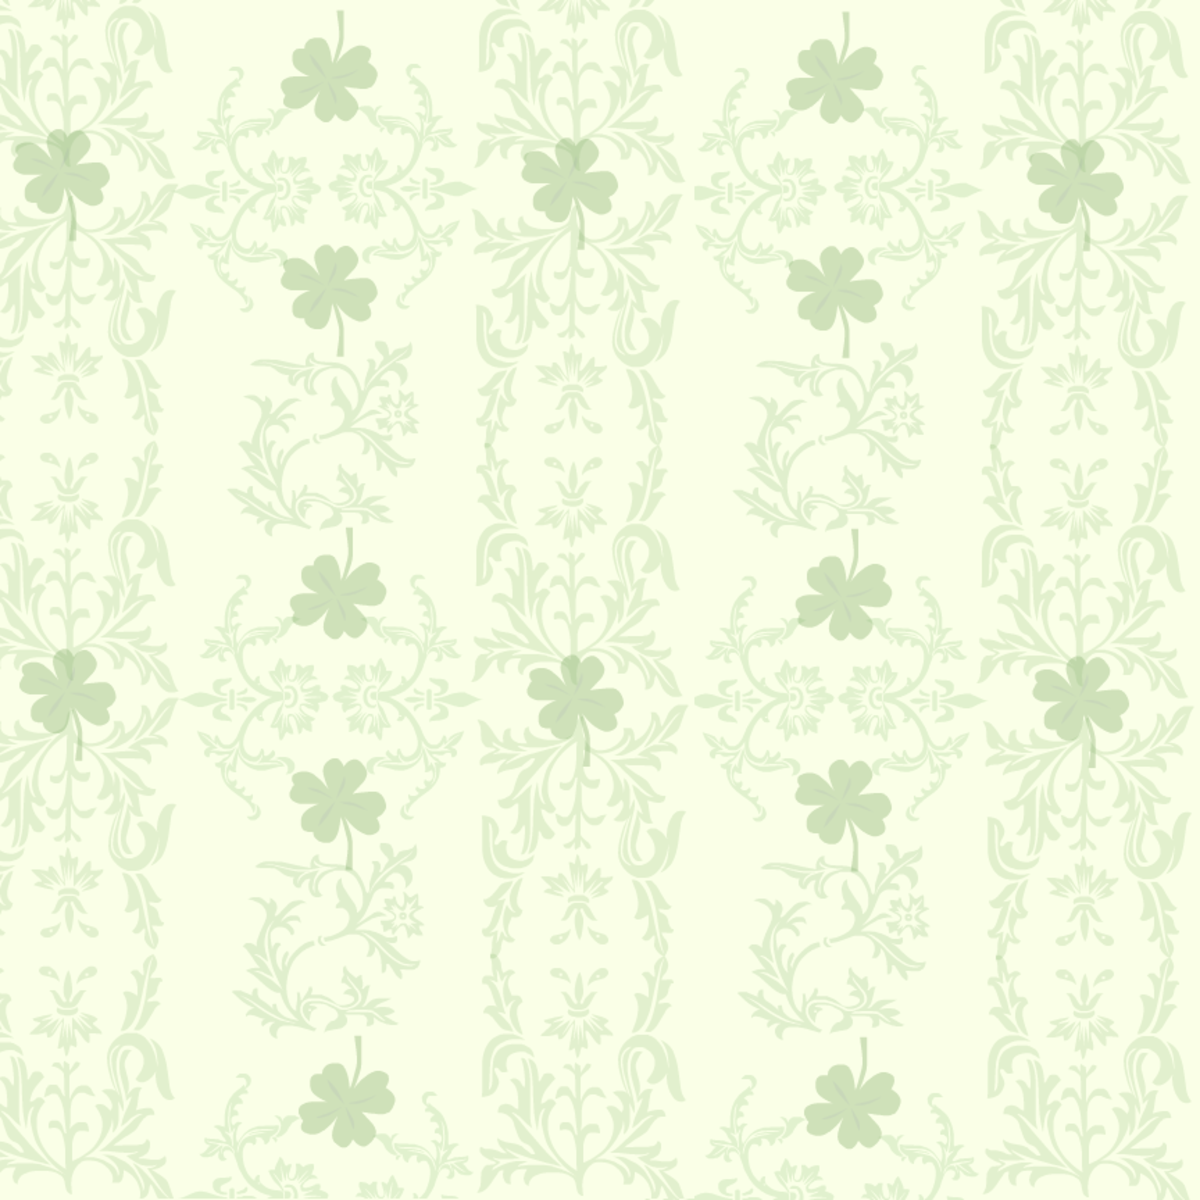 Victorian scrollwork free St. Patrick's Day scrapbooking supplies -- ivory background